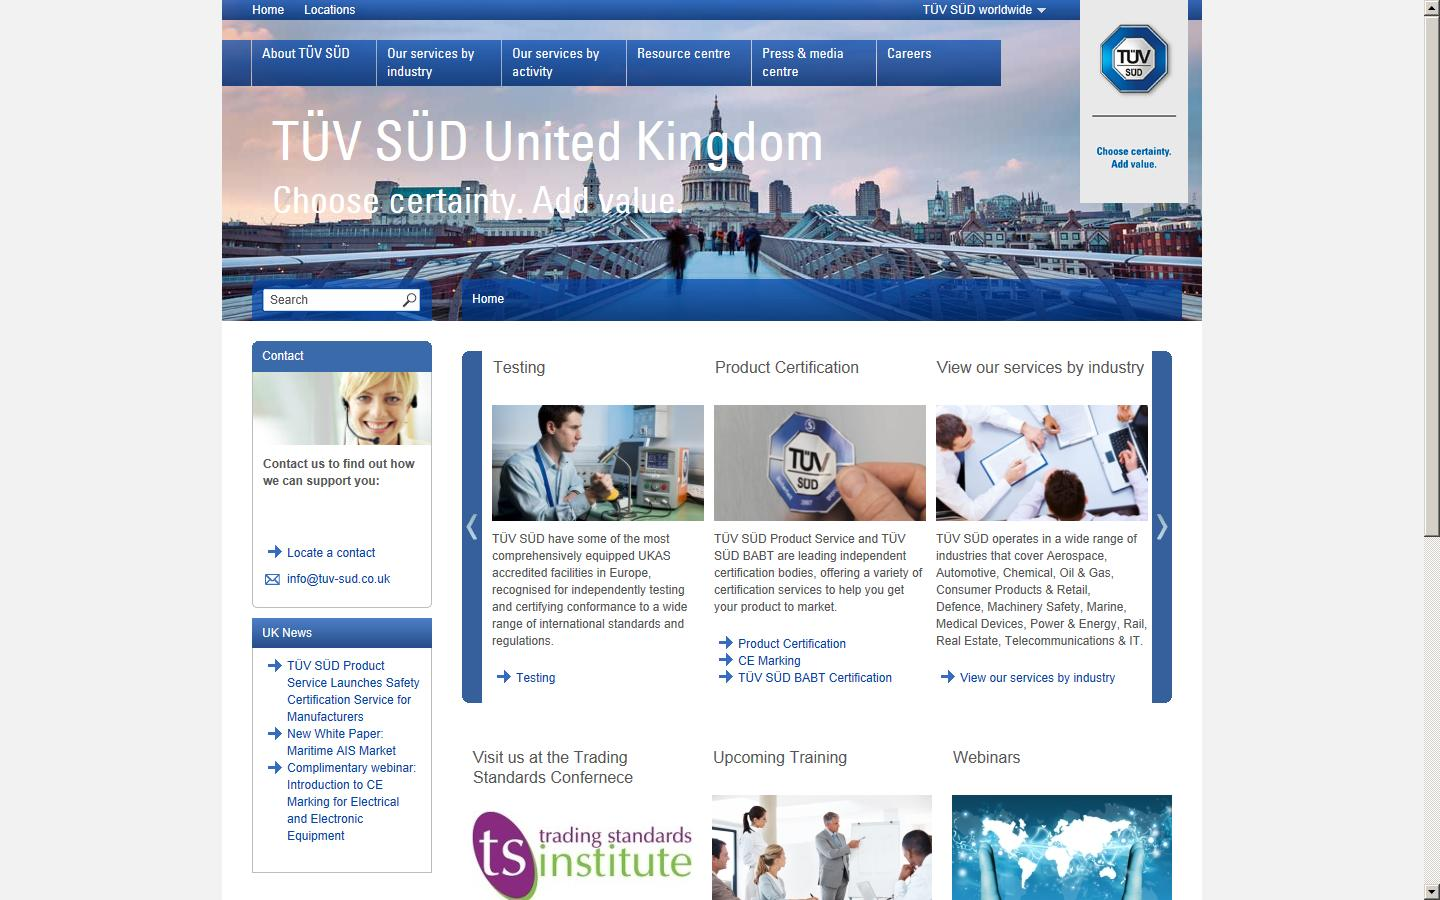 TUV Product Services, Fareham, Hampshire, PO15 5RL